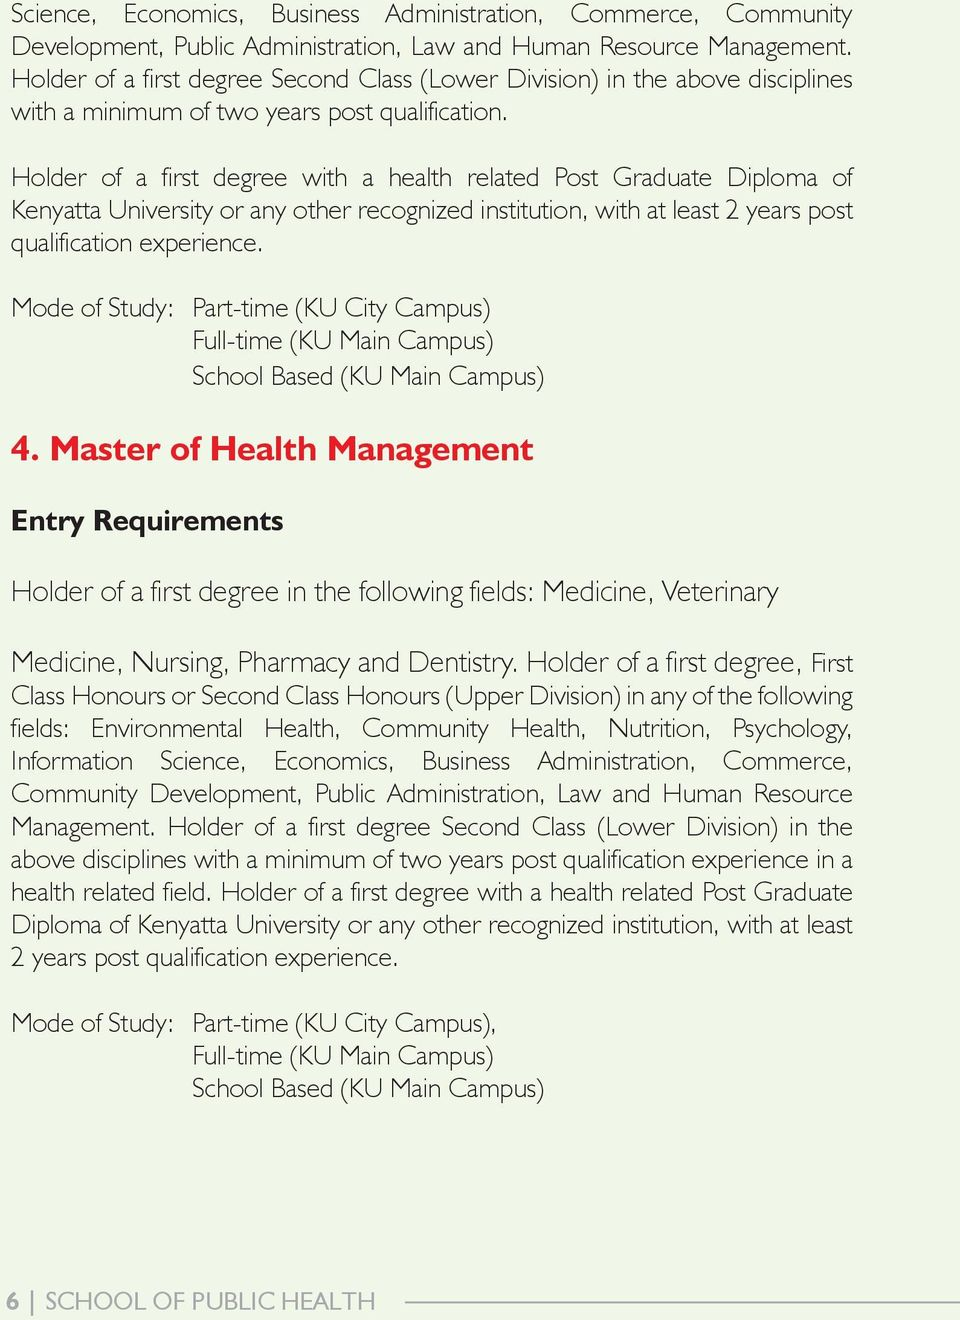 Holder of a first degree with a health related Post Graduate Diploma of Kenyatta University or any other recognized institution, with at least 2 years post qualification experience.